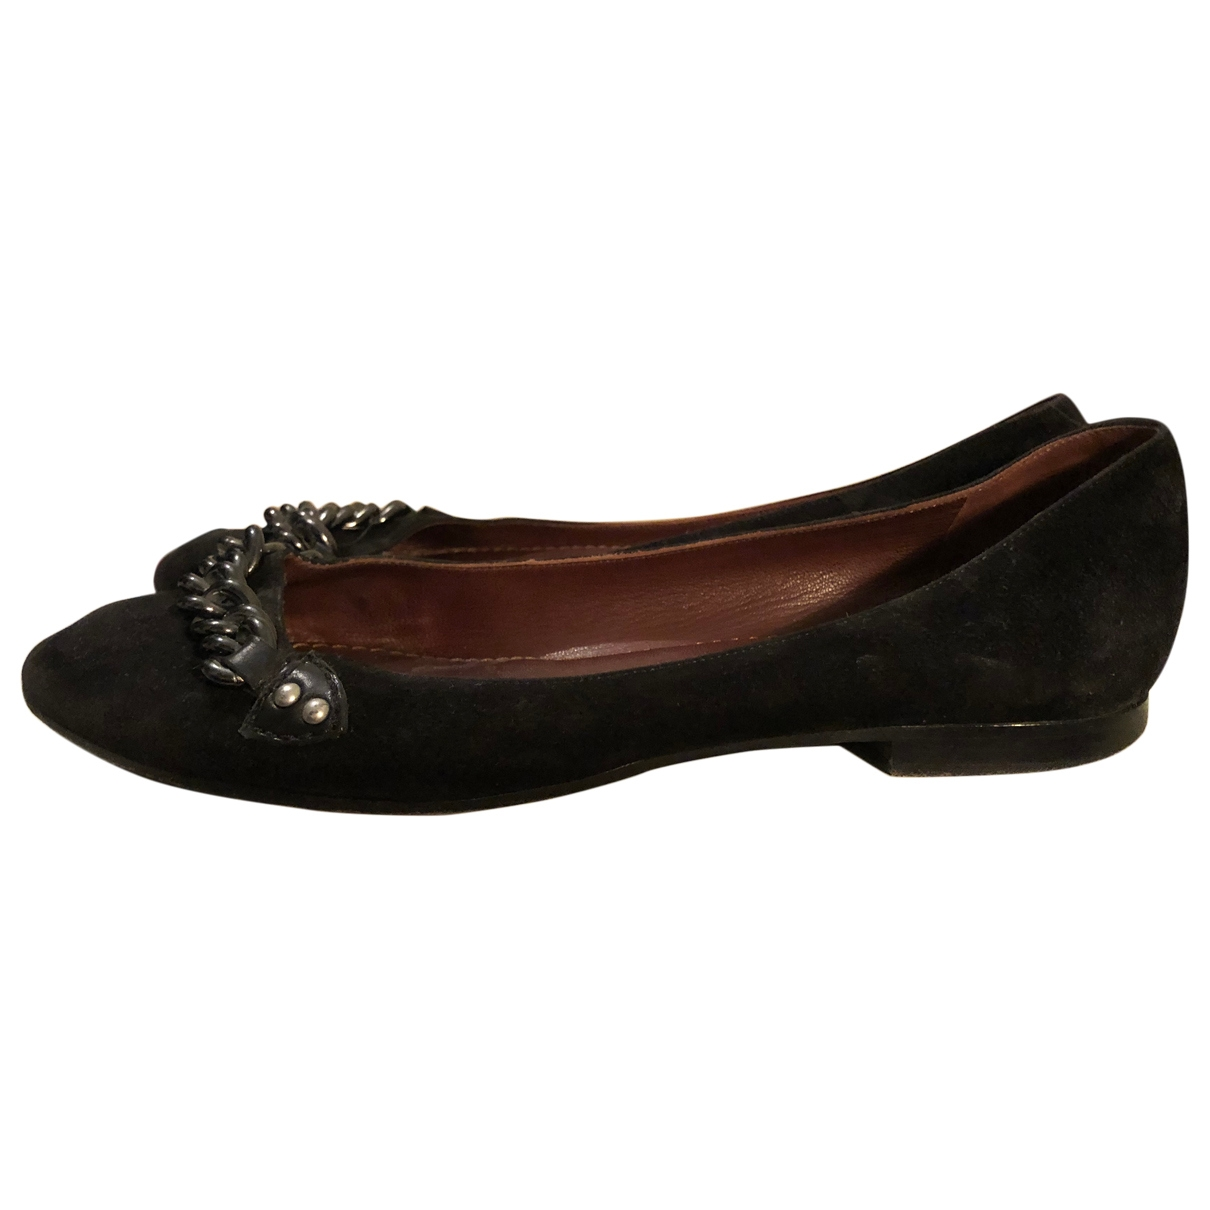 Marc Jacobs \N Black Suede Ballet flats for Women 36 EU